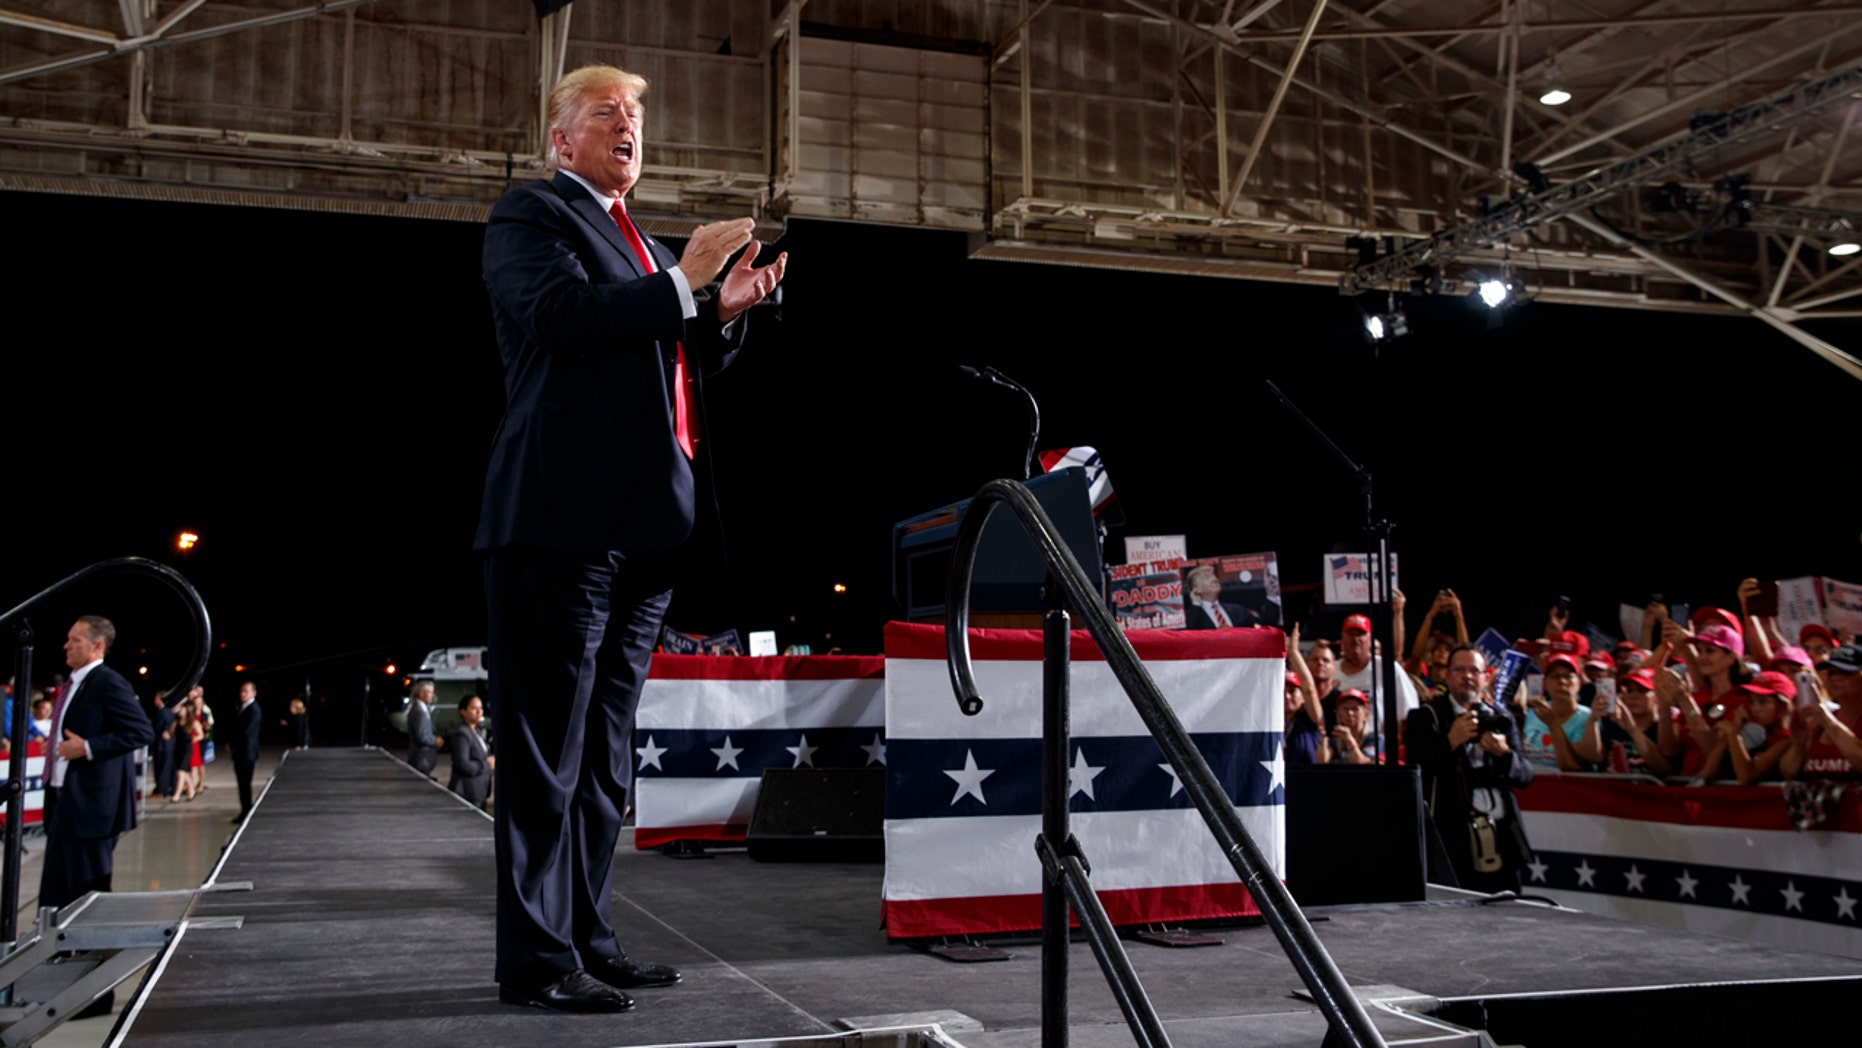 President Donald Trump calls out as he leaves the stage after speaking at a campaign rally at International Air Response, Friday, Oct. 19, 2018, in Mesa, Ariz.